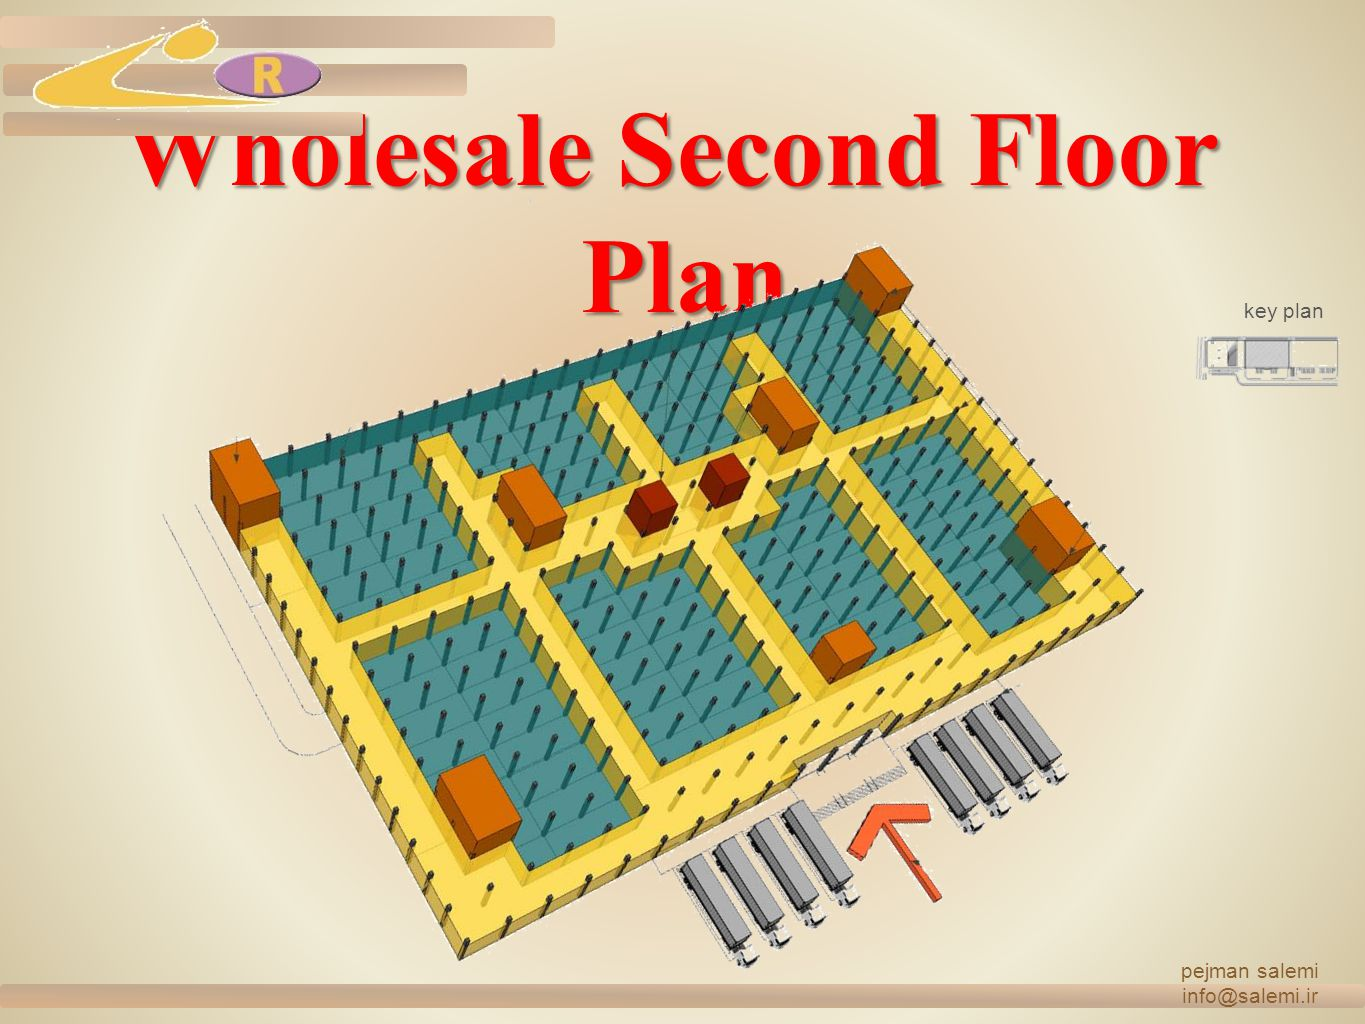 Wholesale Second Floor Plan